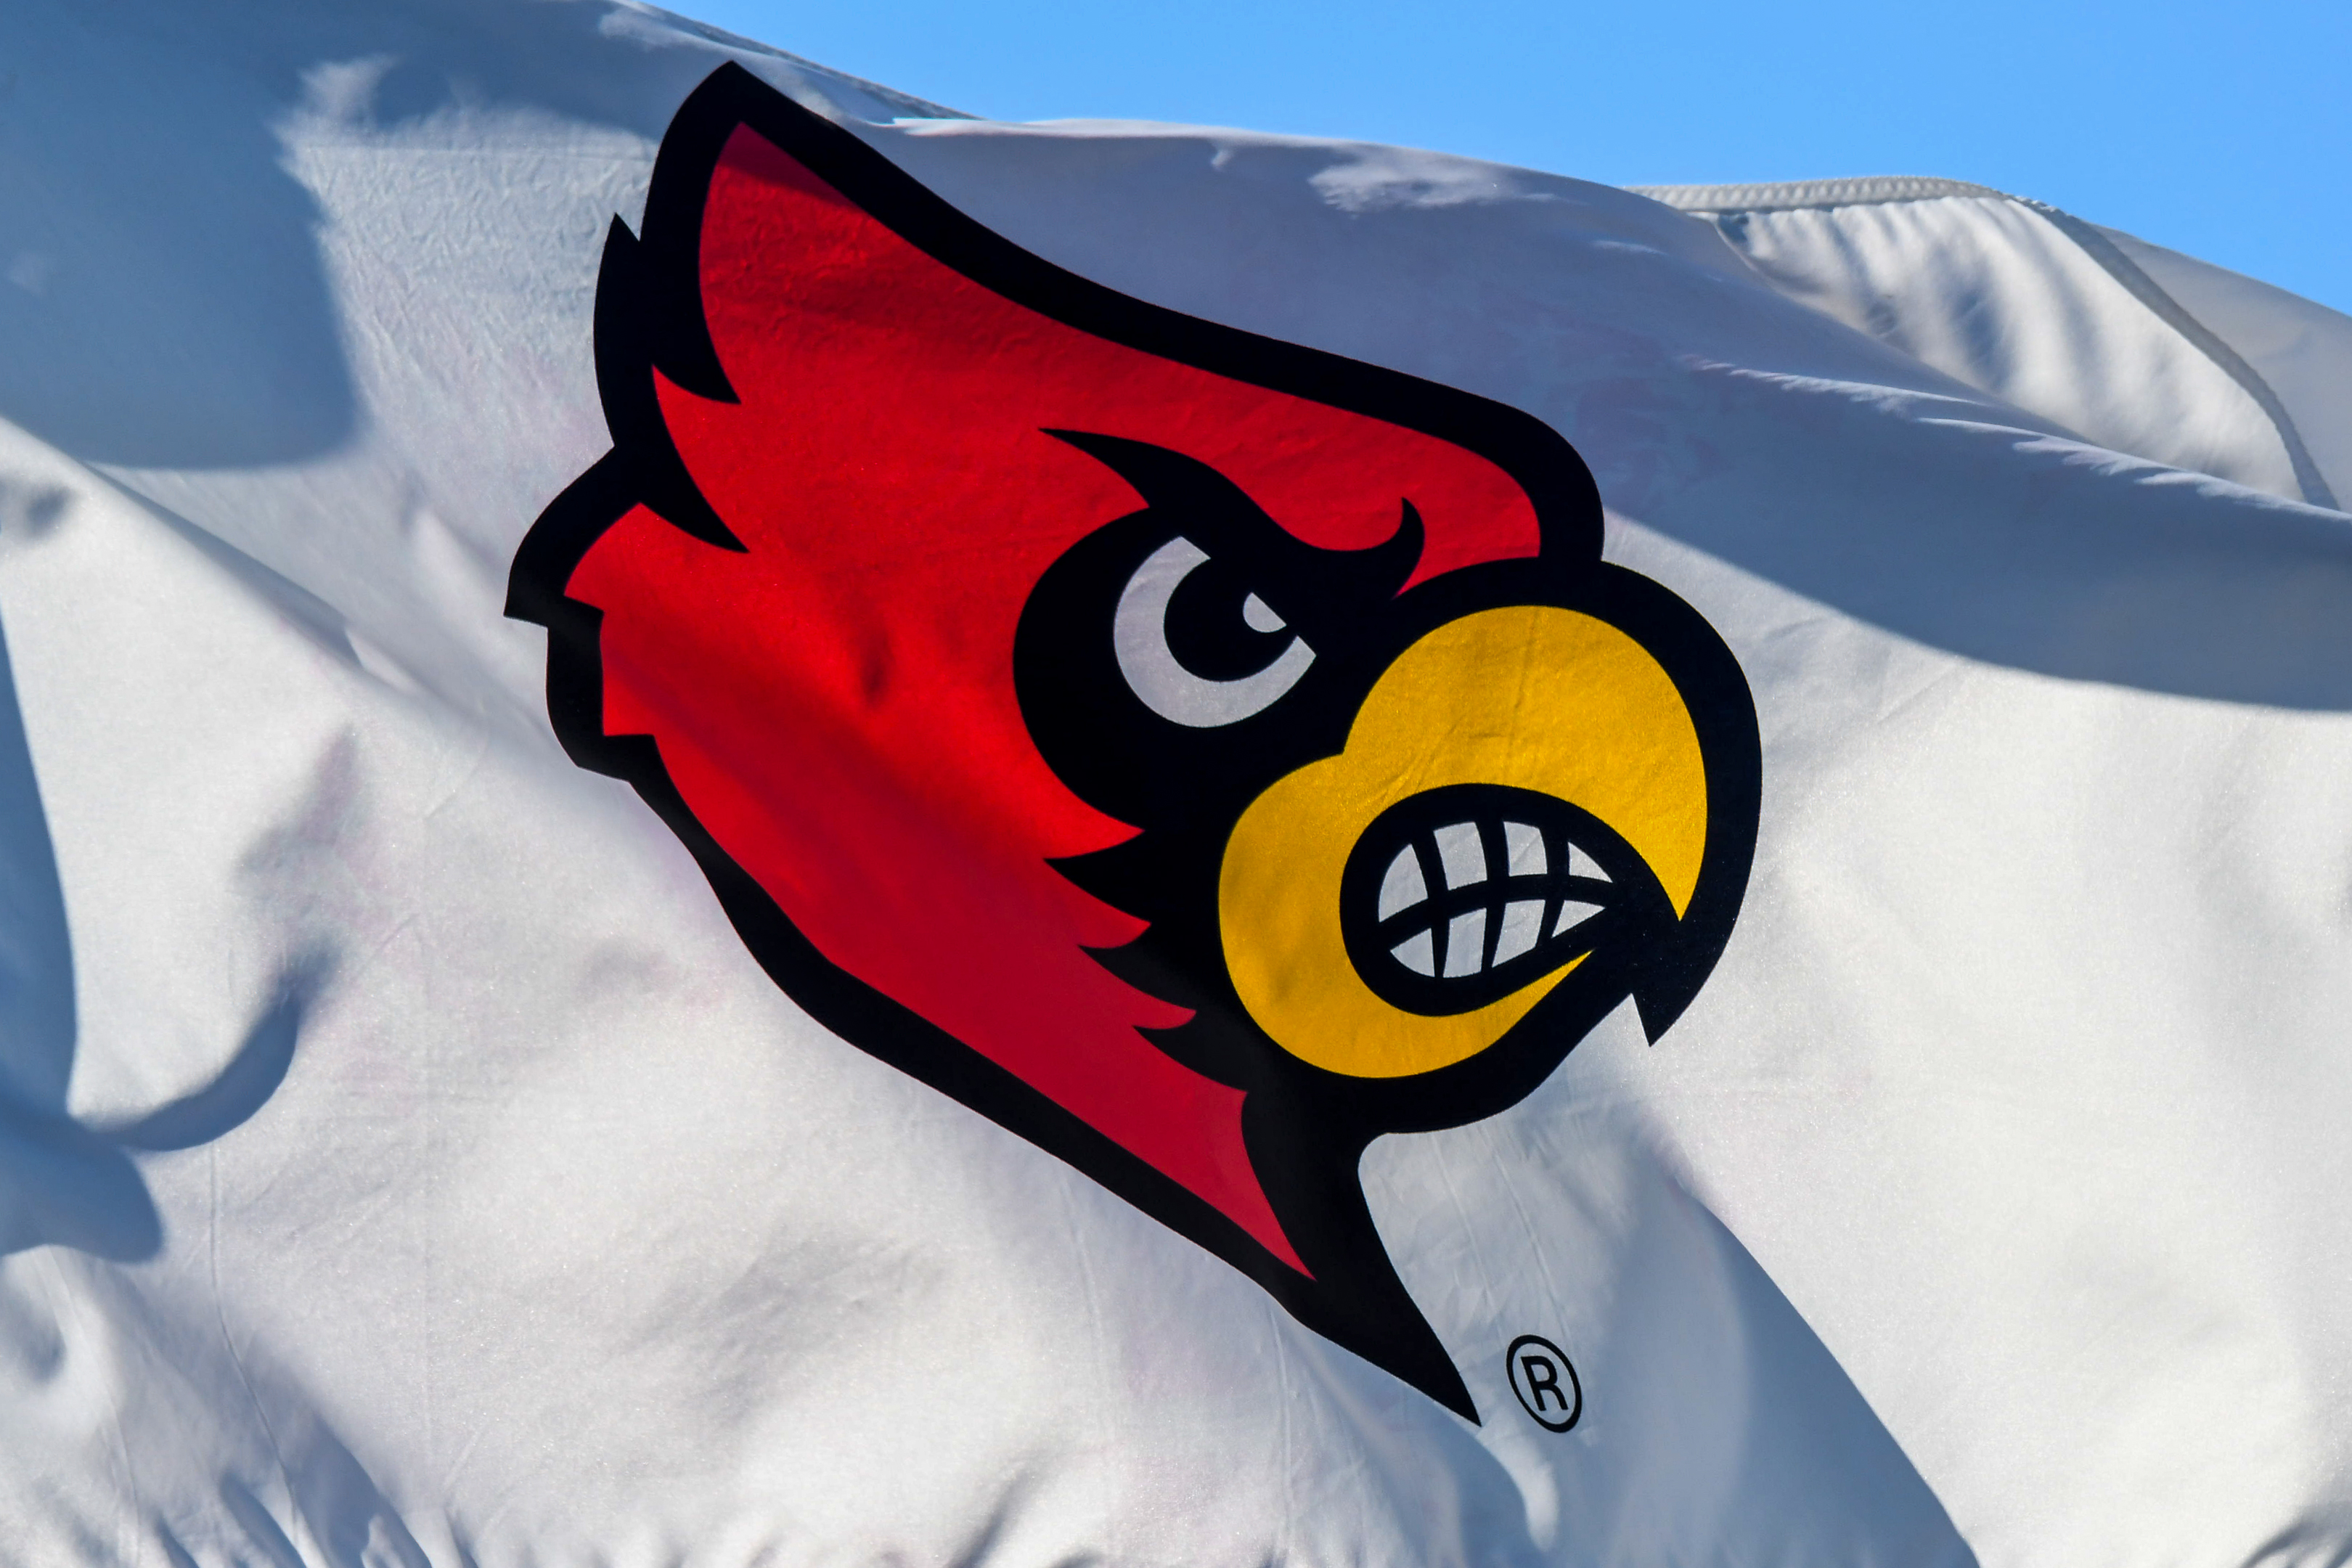 COLLEGE SOCCER: NOV 11 ACC Championship - Louisville v North Carolina